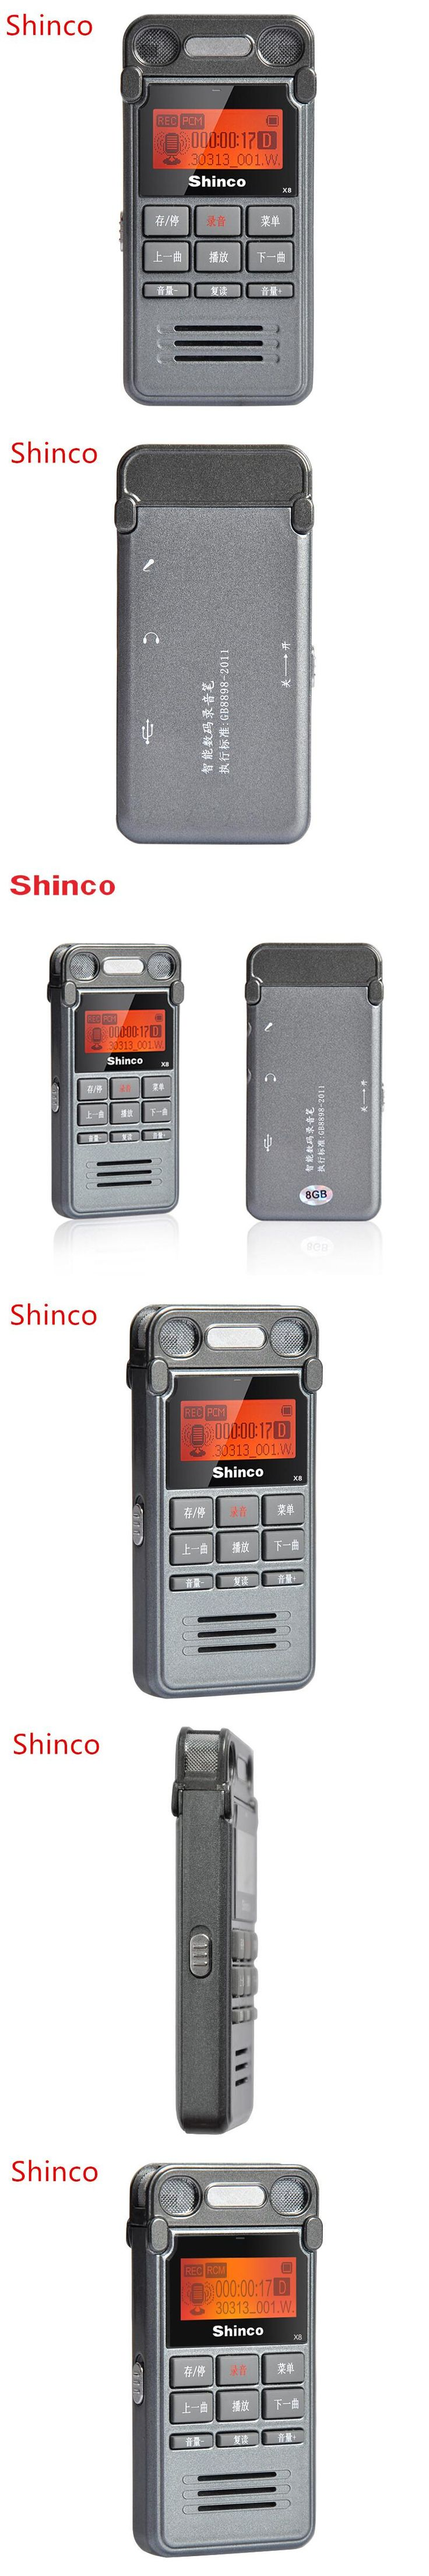 Shinco X8 16G Denoise High-definition Digital Audio Voice Recorder Dictaphone Telephone Recording with LCD Display MP3 Player